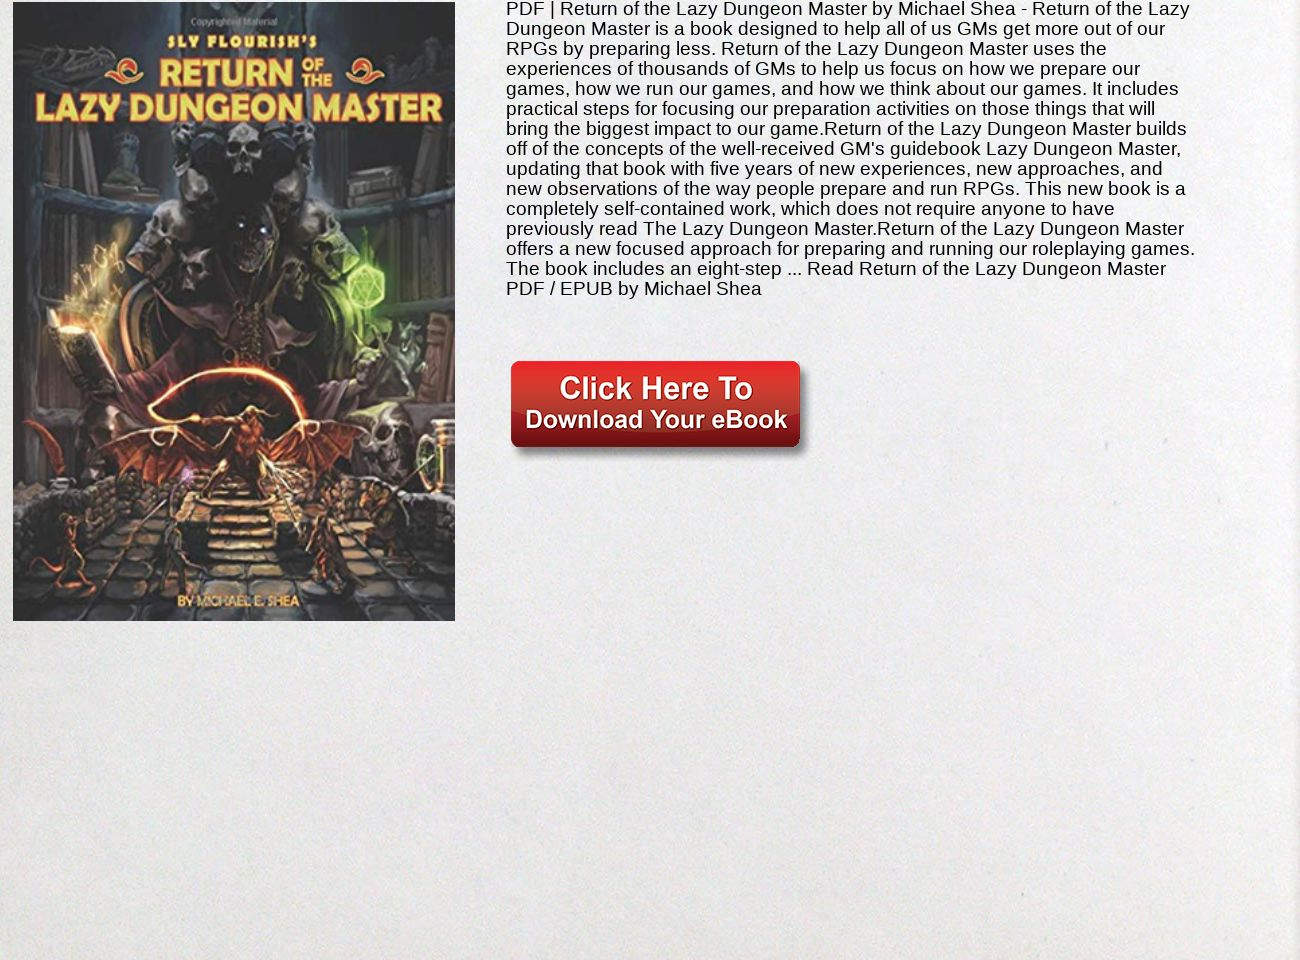 Return Of The Lazy Dungeon Master Pdf